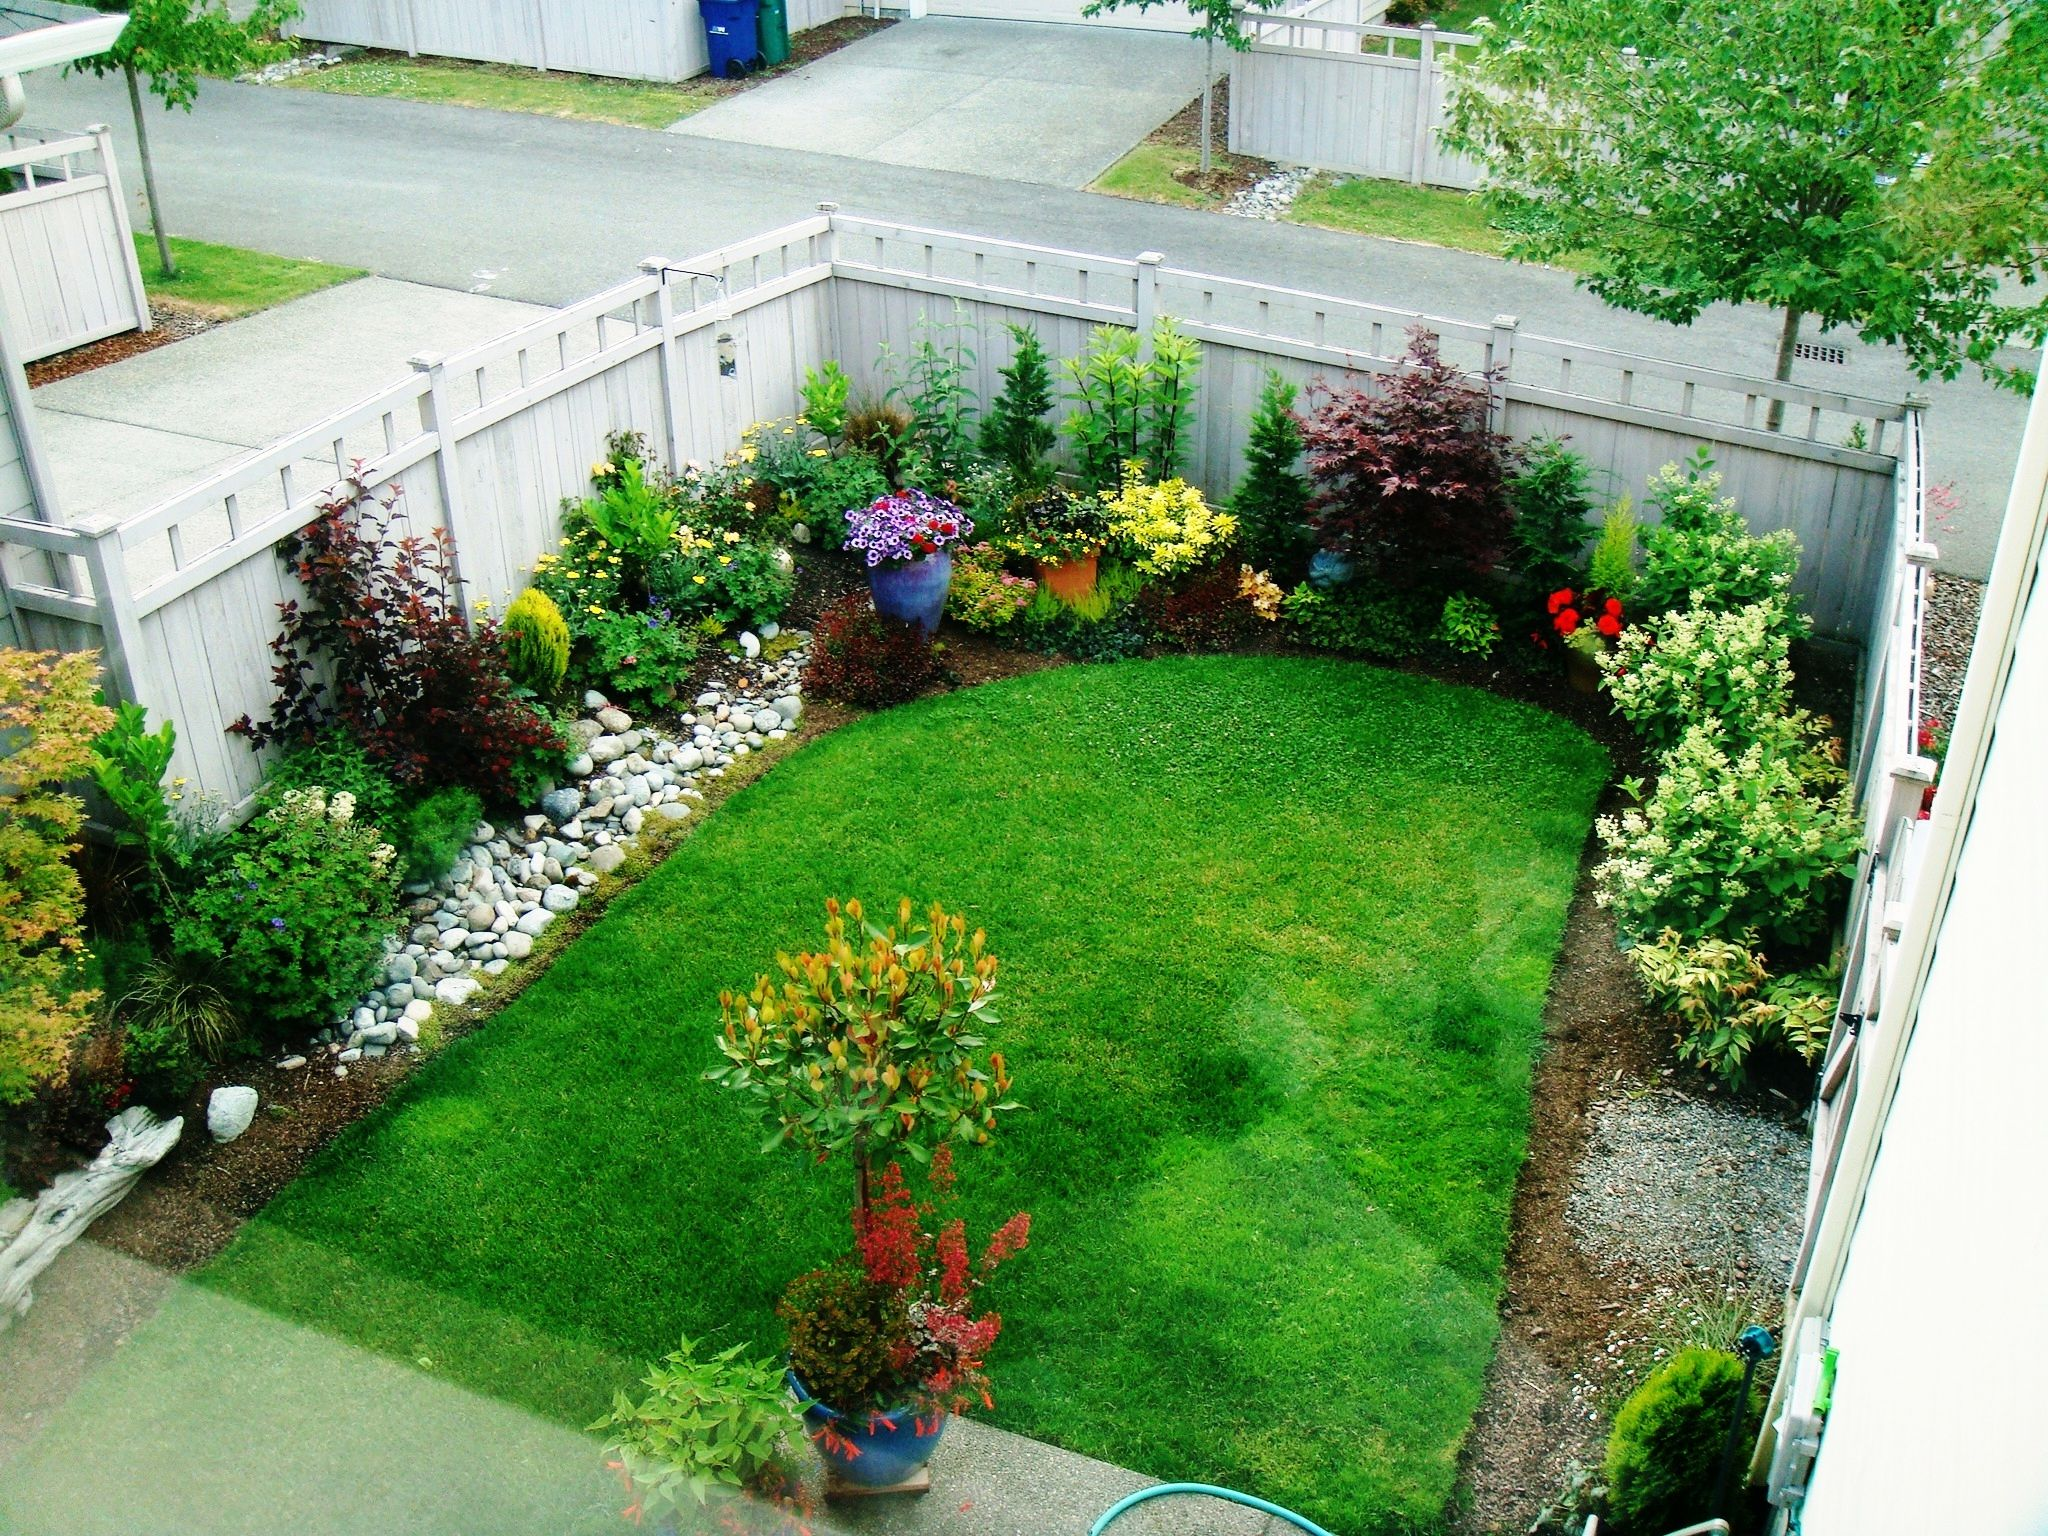 Place Colorful Flowerss and Plants in Old Fashioned Small Garden Ideas with White Oak Fence